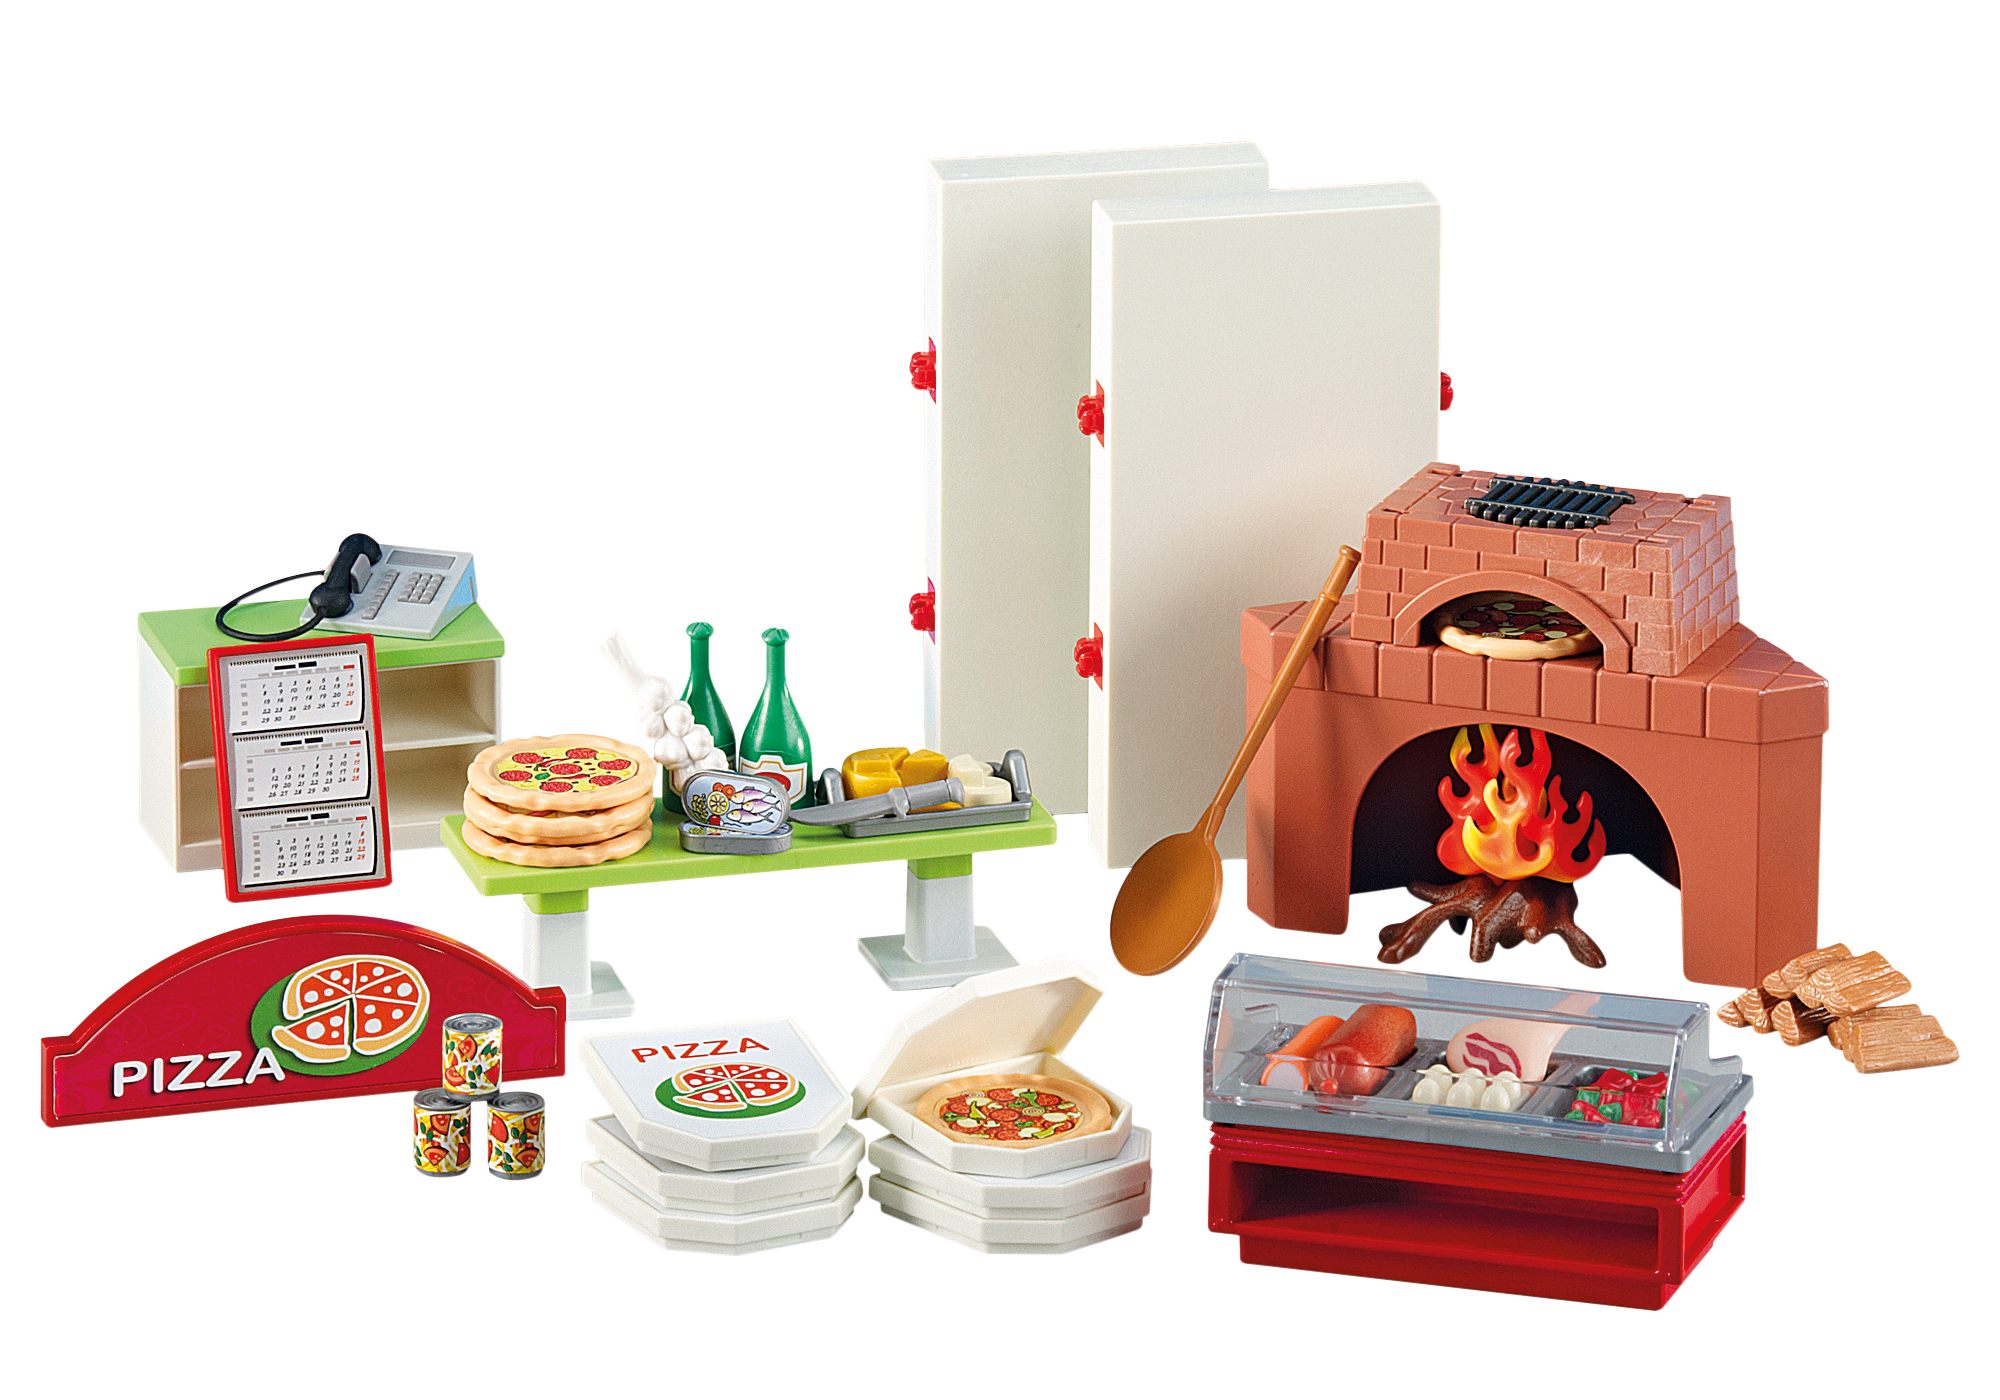 http://media.playmobil.com/i/playmobil/6291_product_detail/Pizaria